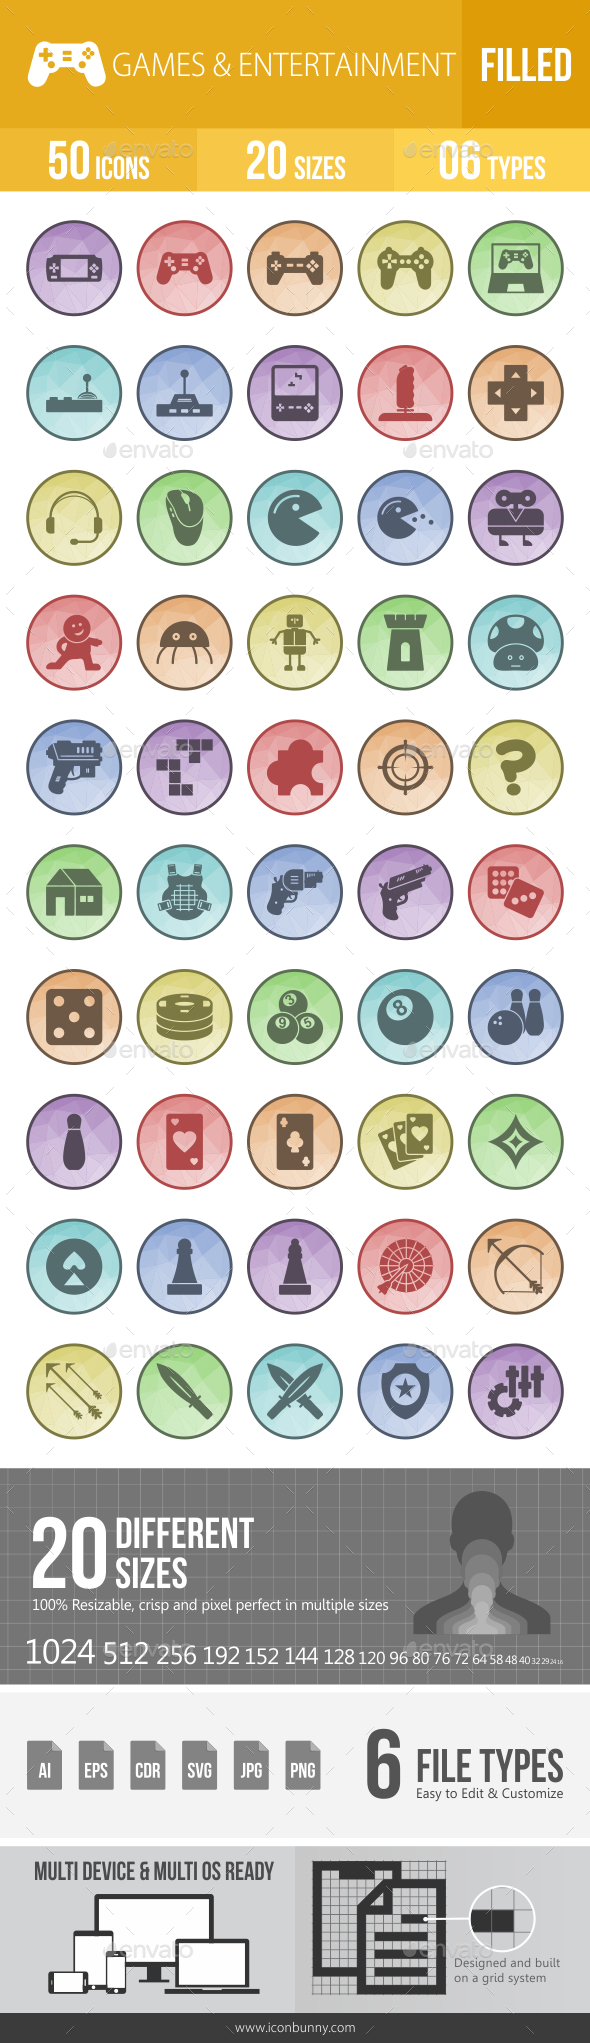 GraphicRiver 50 Games & Entertainment Filled Low Poly Icons 21176116